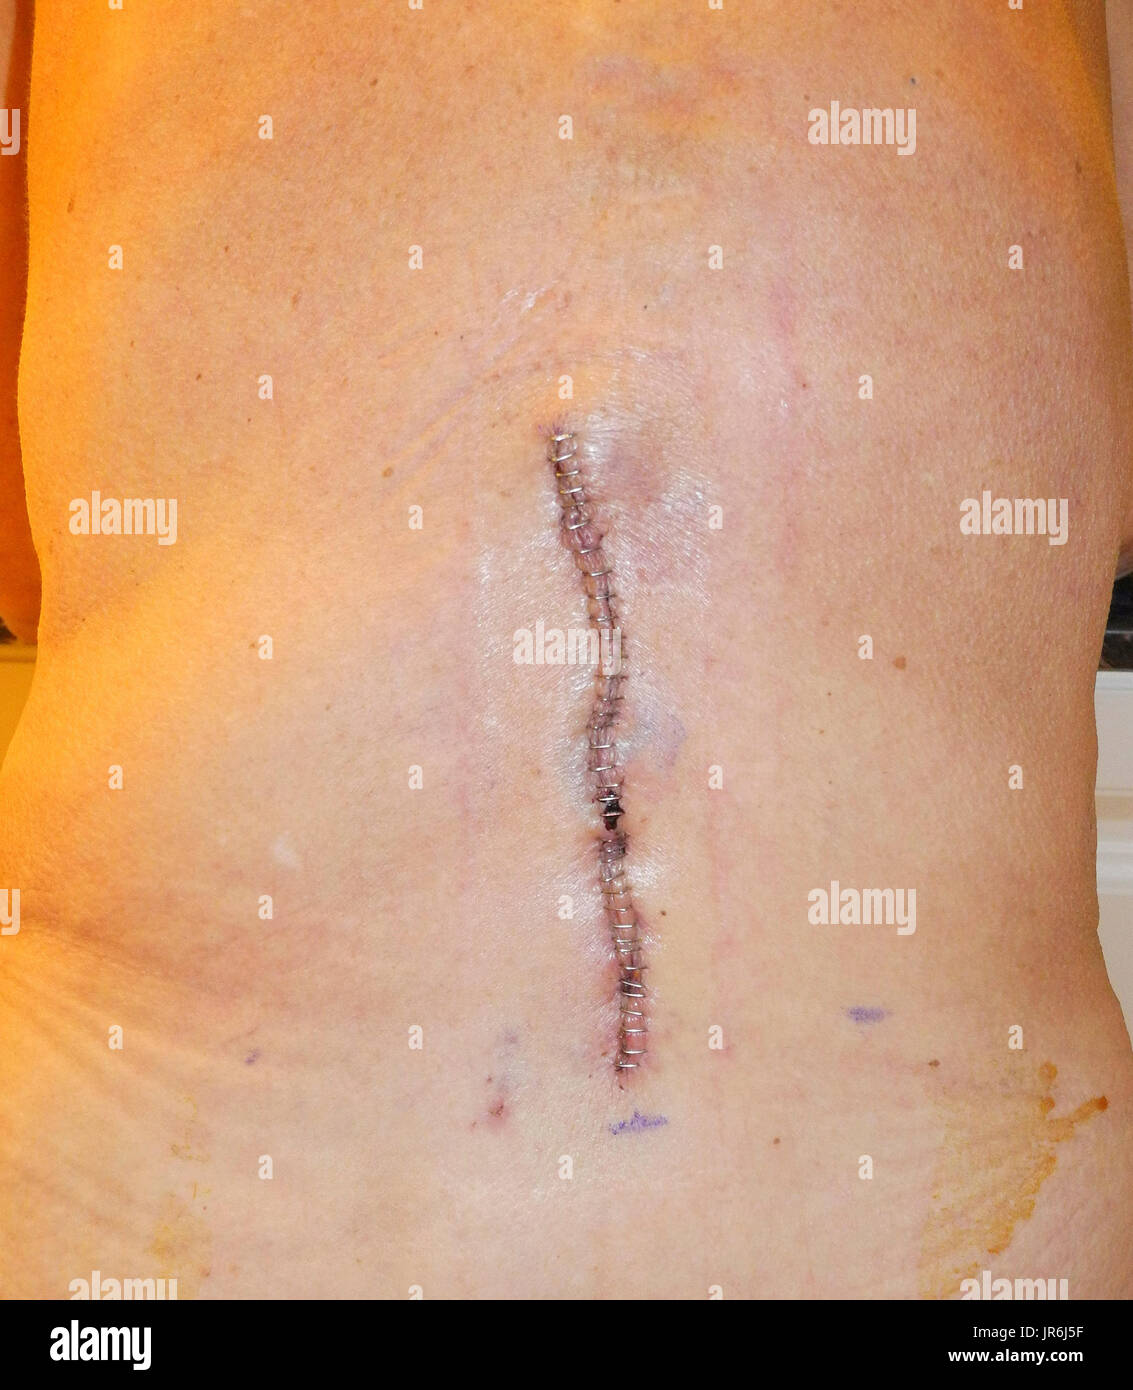 37 stainless-steel surgical staples were used to close this long vertical incision required for a lower back operation on the spine of a Caucasian woman. Using surgical staples is faster than suturing an incision by hand with needle and thread. - Stock Image